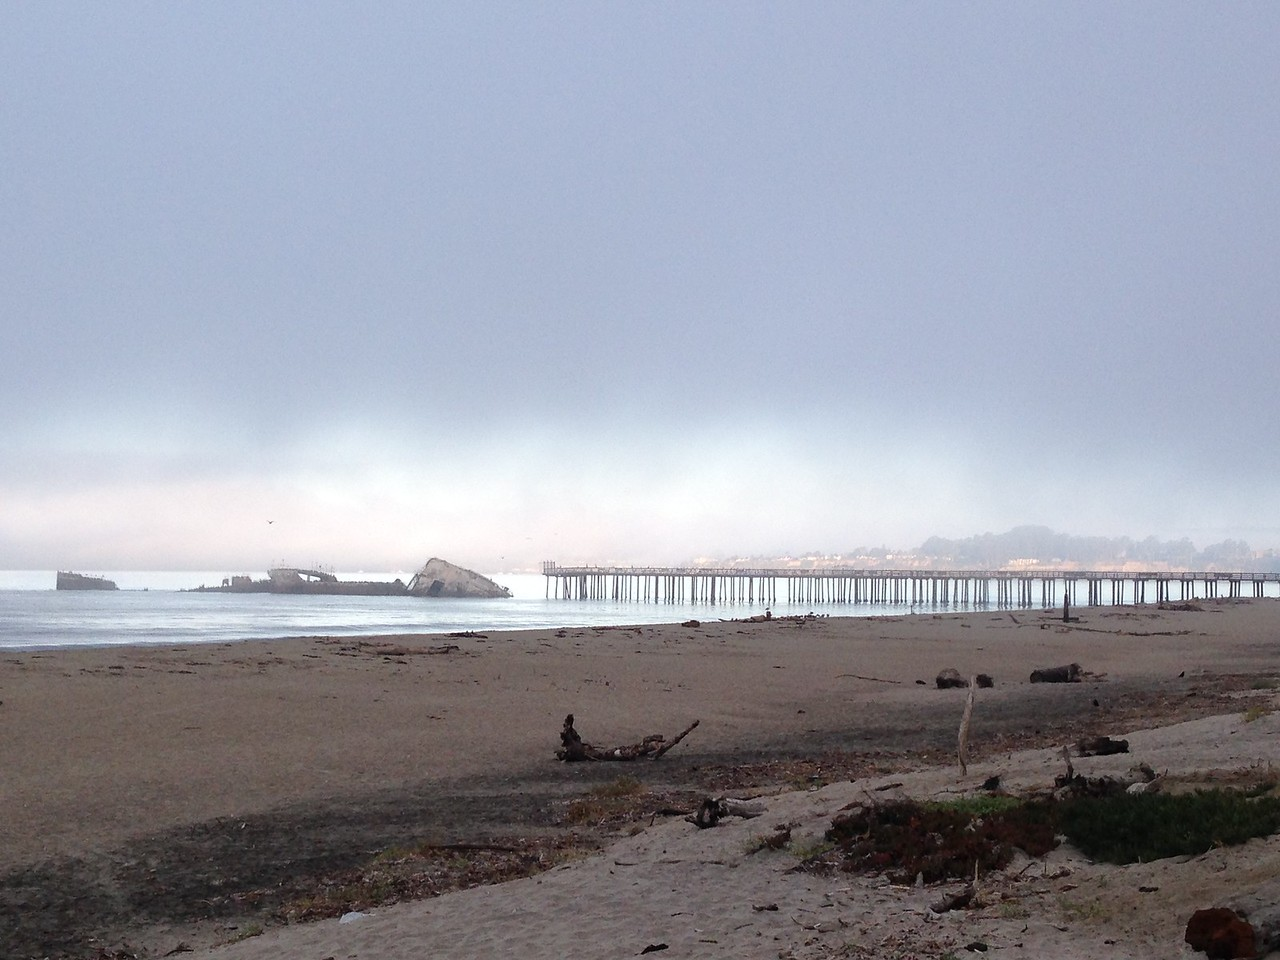 The iconic Aptos pier and its busted-up old shipwreck. Aptos is cloudy while Santa Cruz, in the distance, is always sunny, just because.